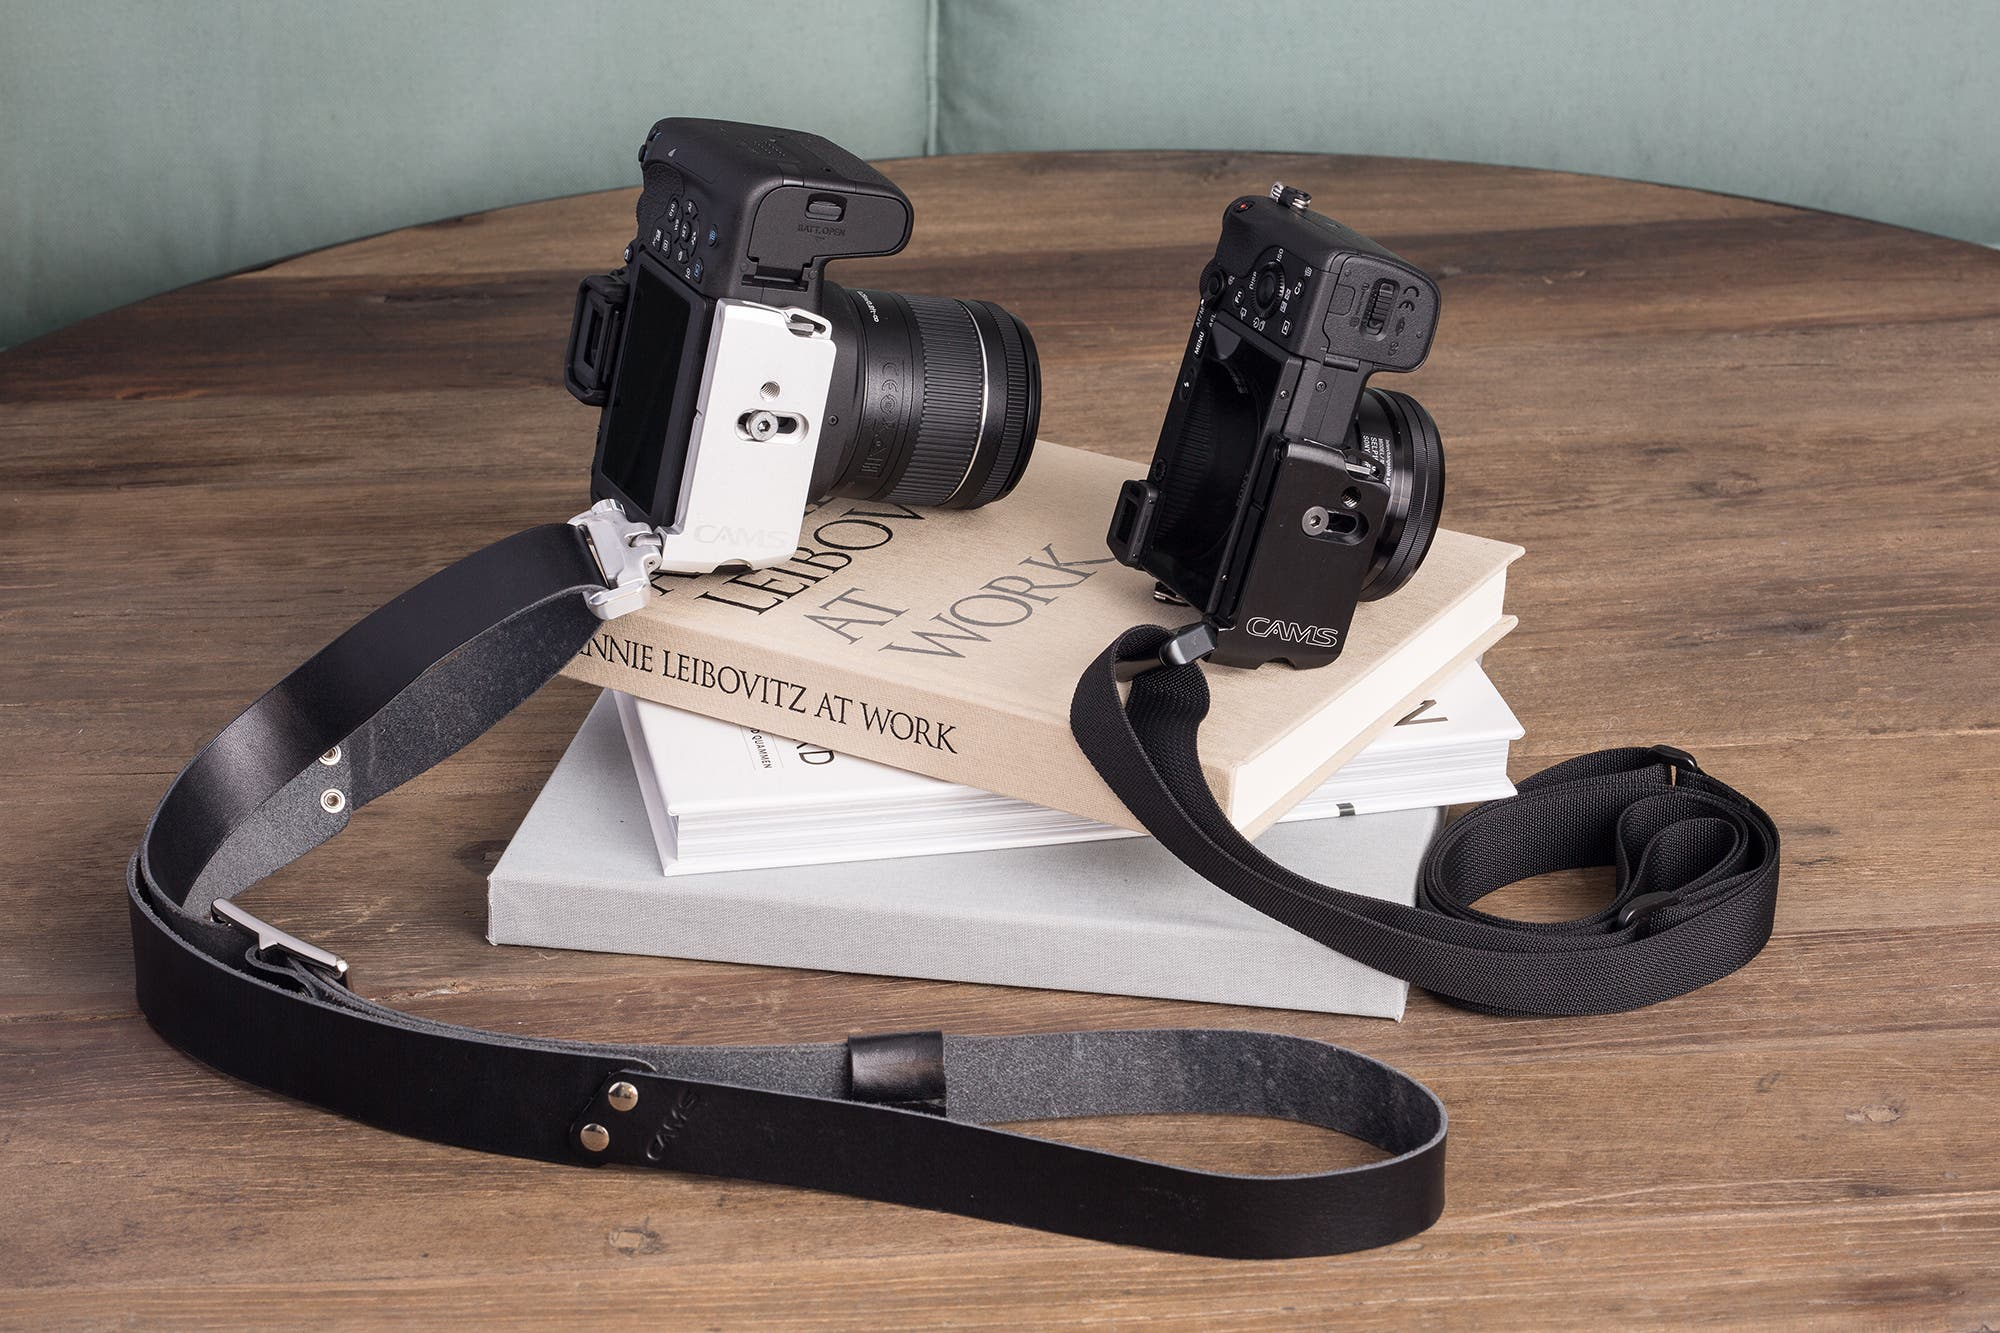 CAMS Camera Plates and Sling Straps Up for a Major Redesign